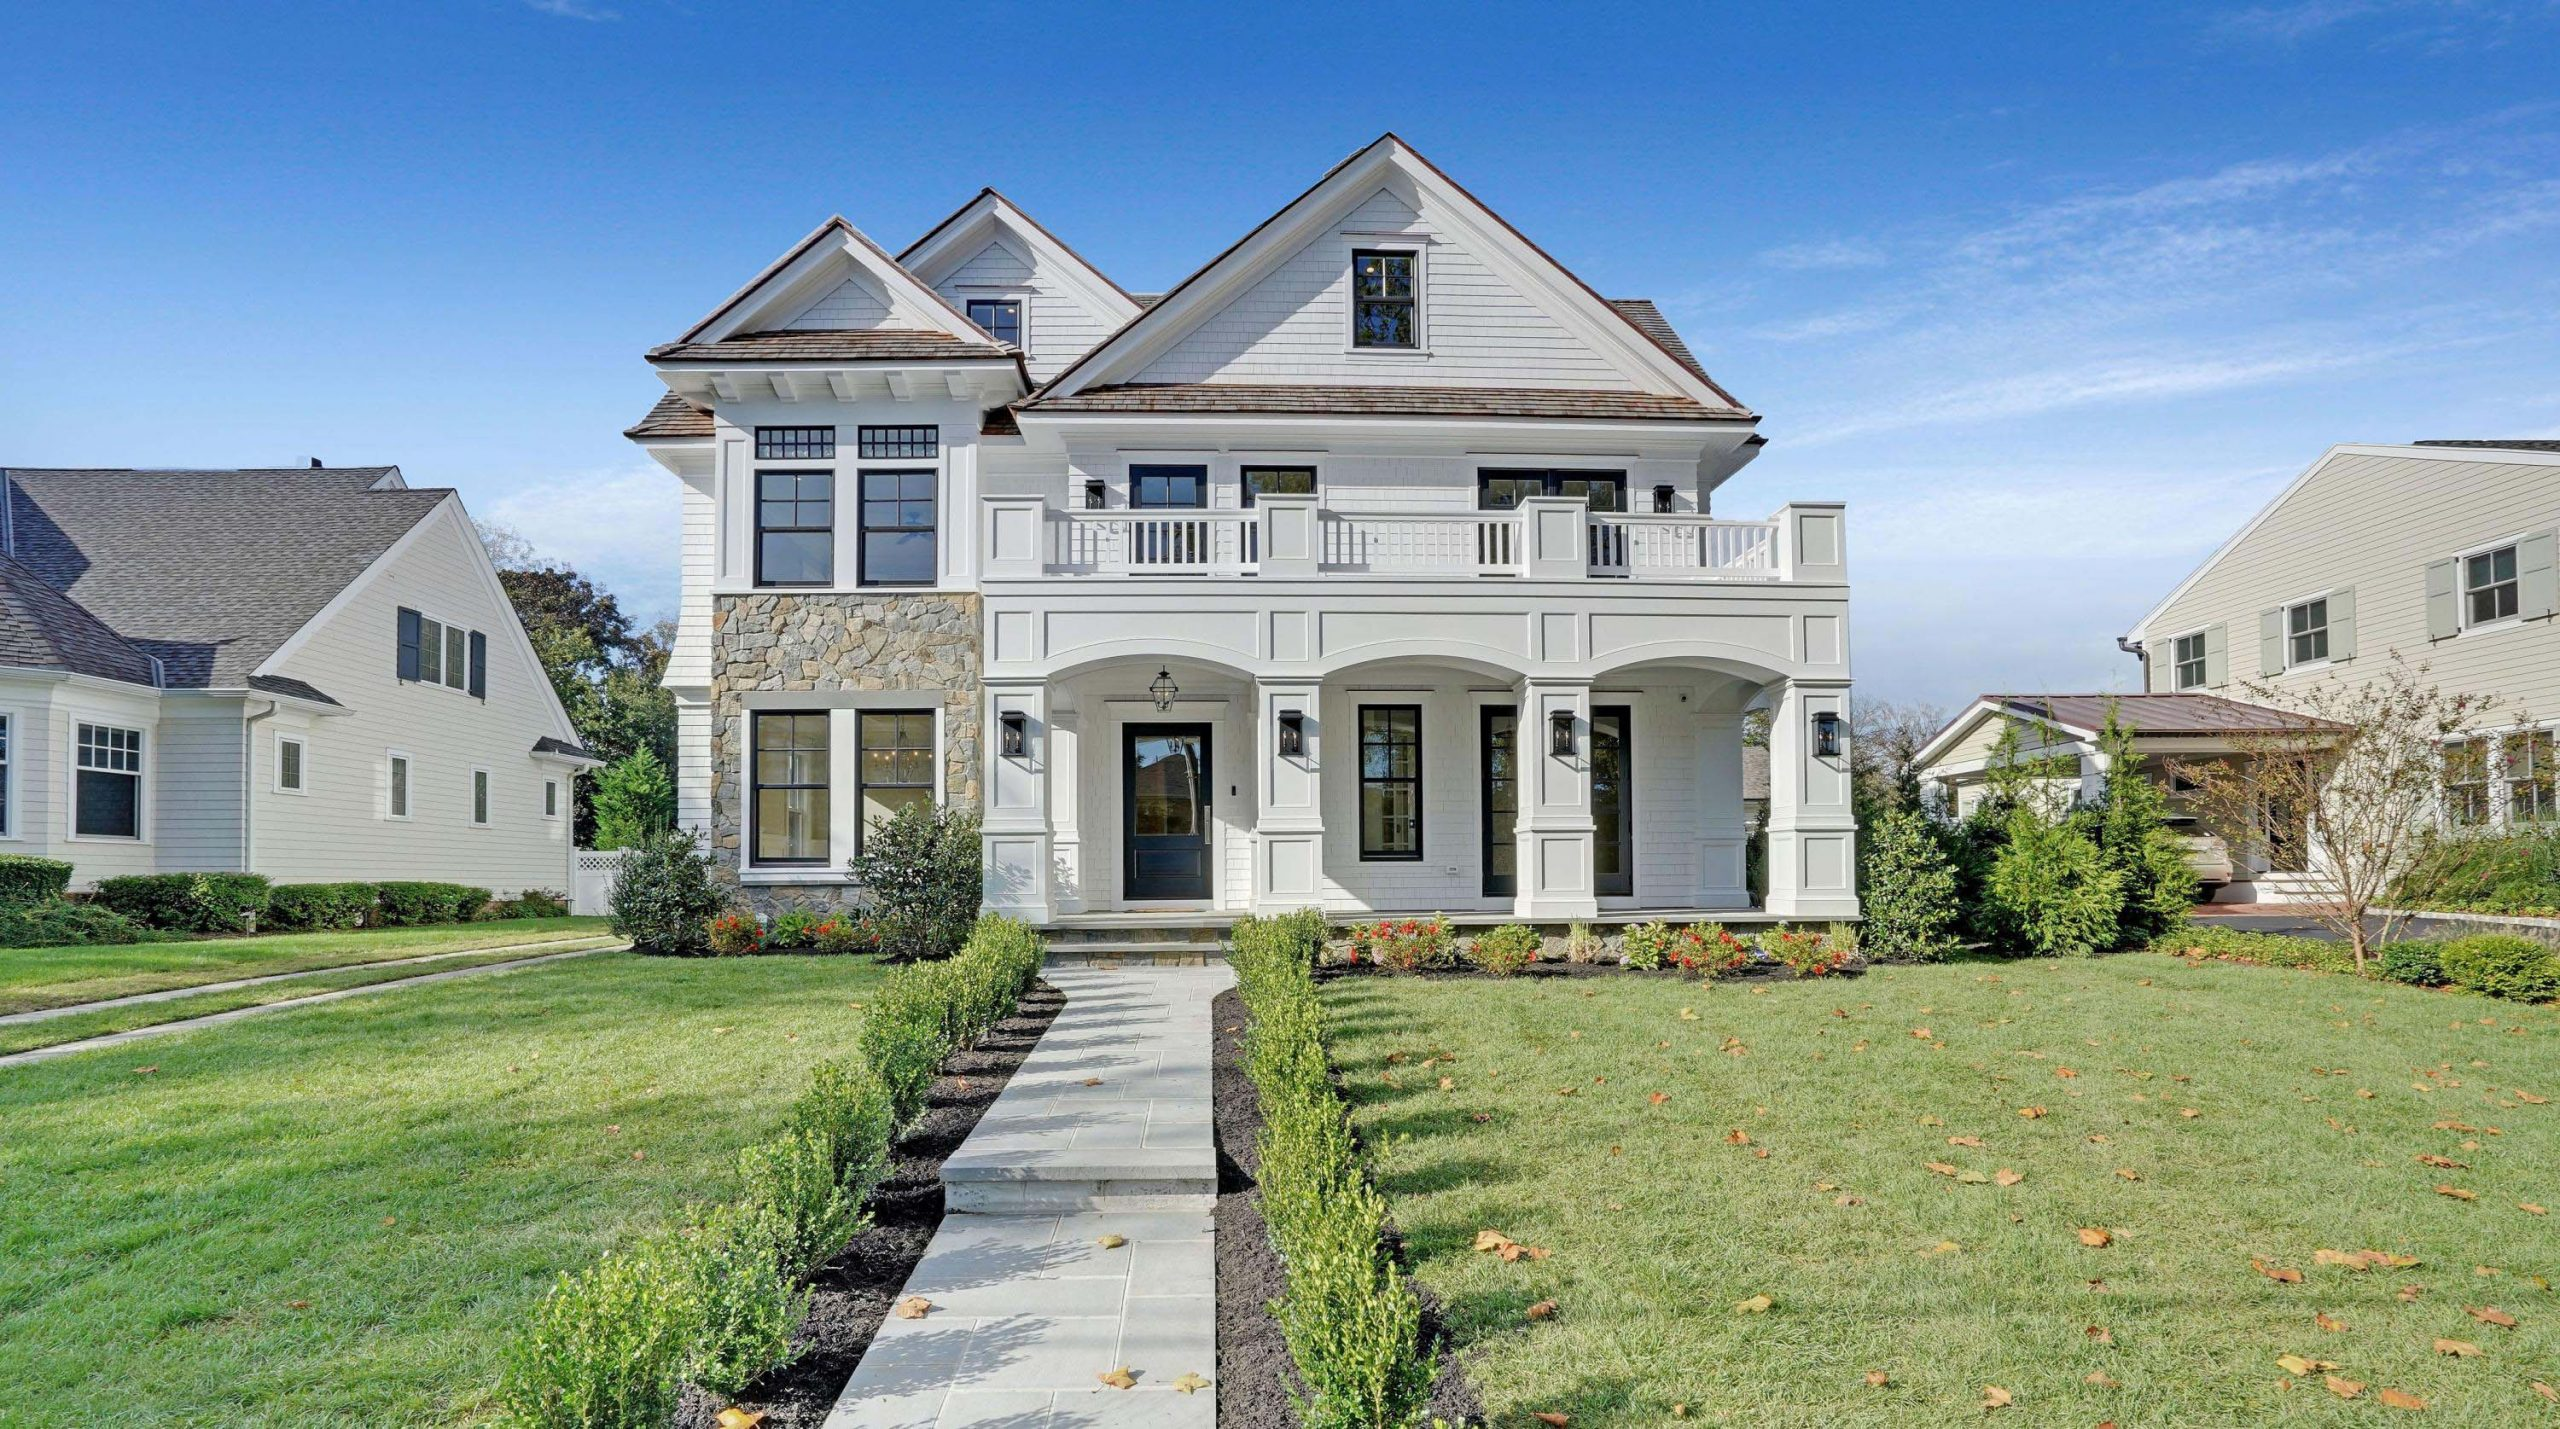 White siding colors with thick white trim and wall paneling. brown shingled roof. Brown stone veneer. Blue front door with tapered porch columns and white rails. Black framed windows. Blue stone walkway.